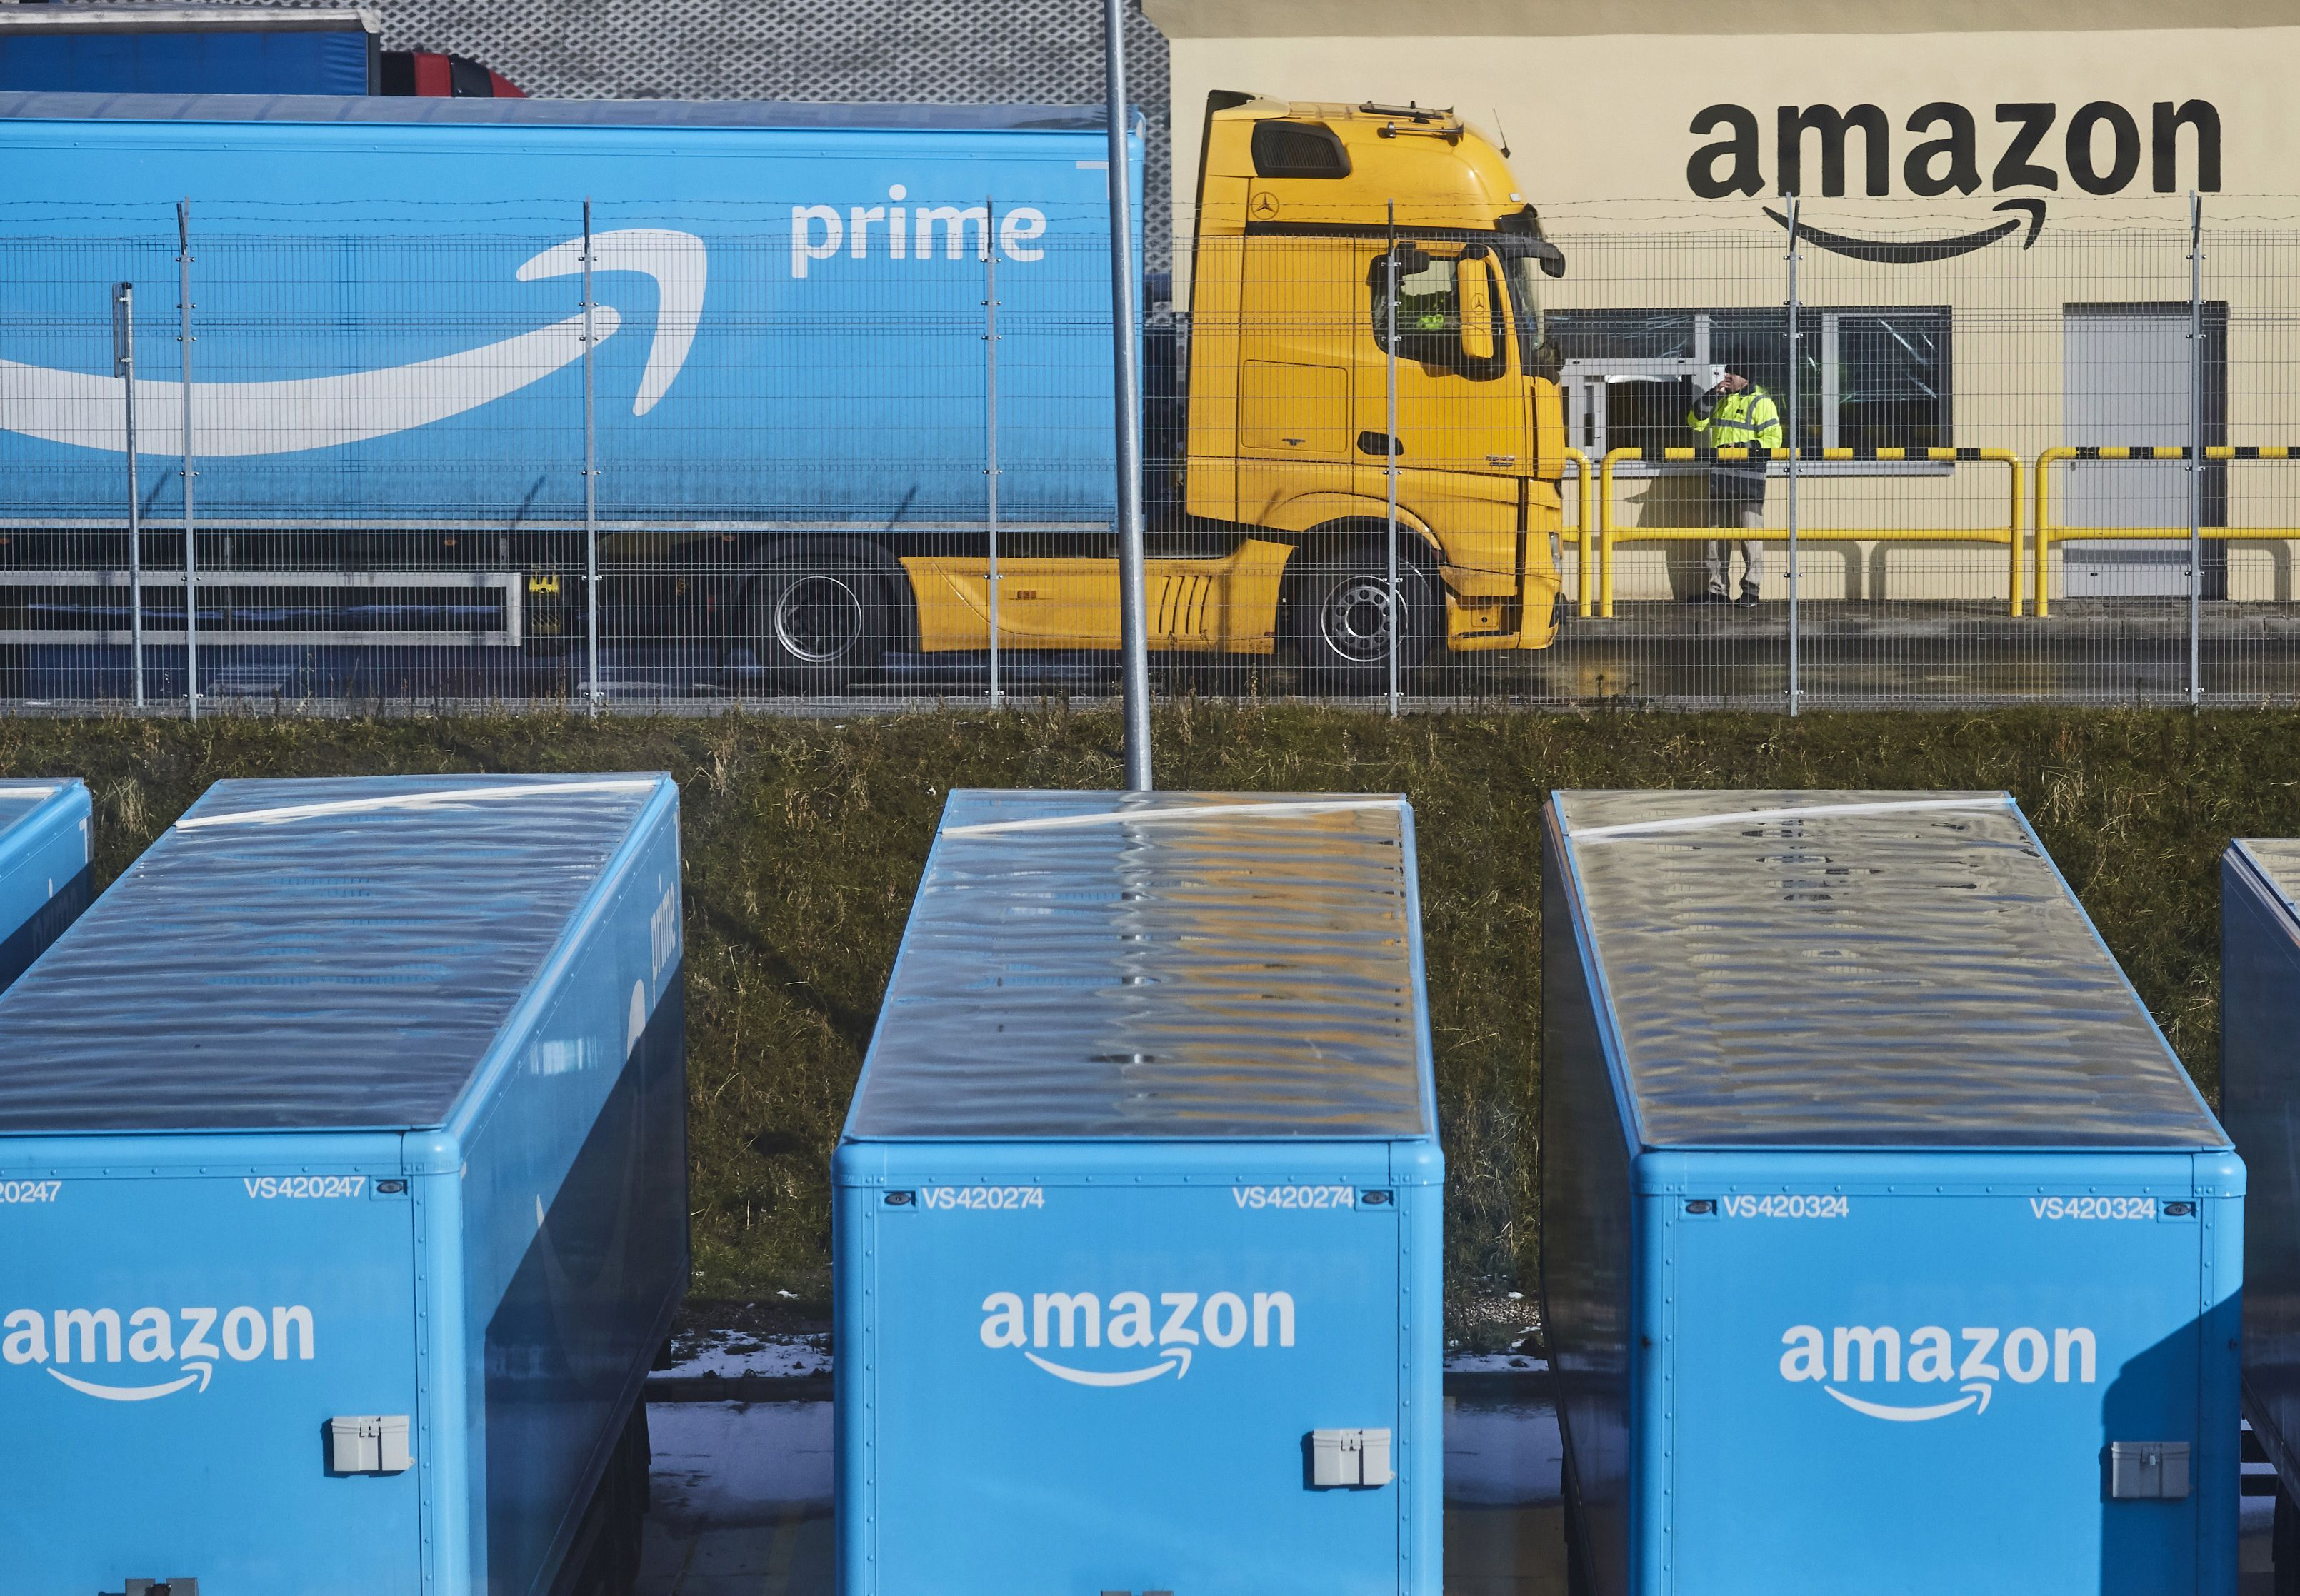 Amazon Freight, 'Uber for trucking' service, running since last year